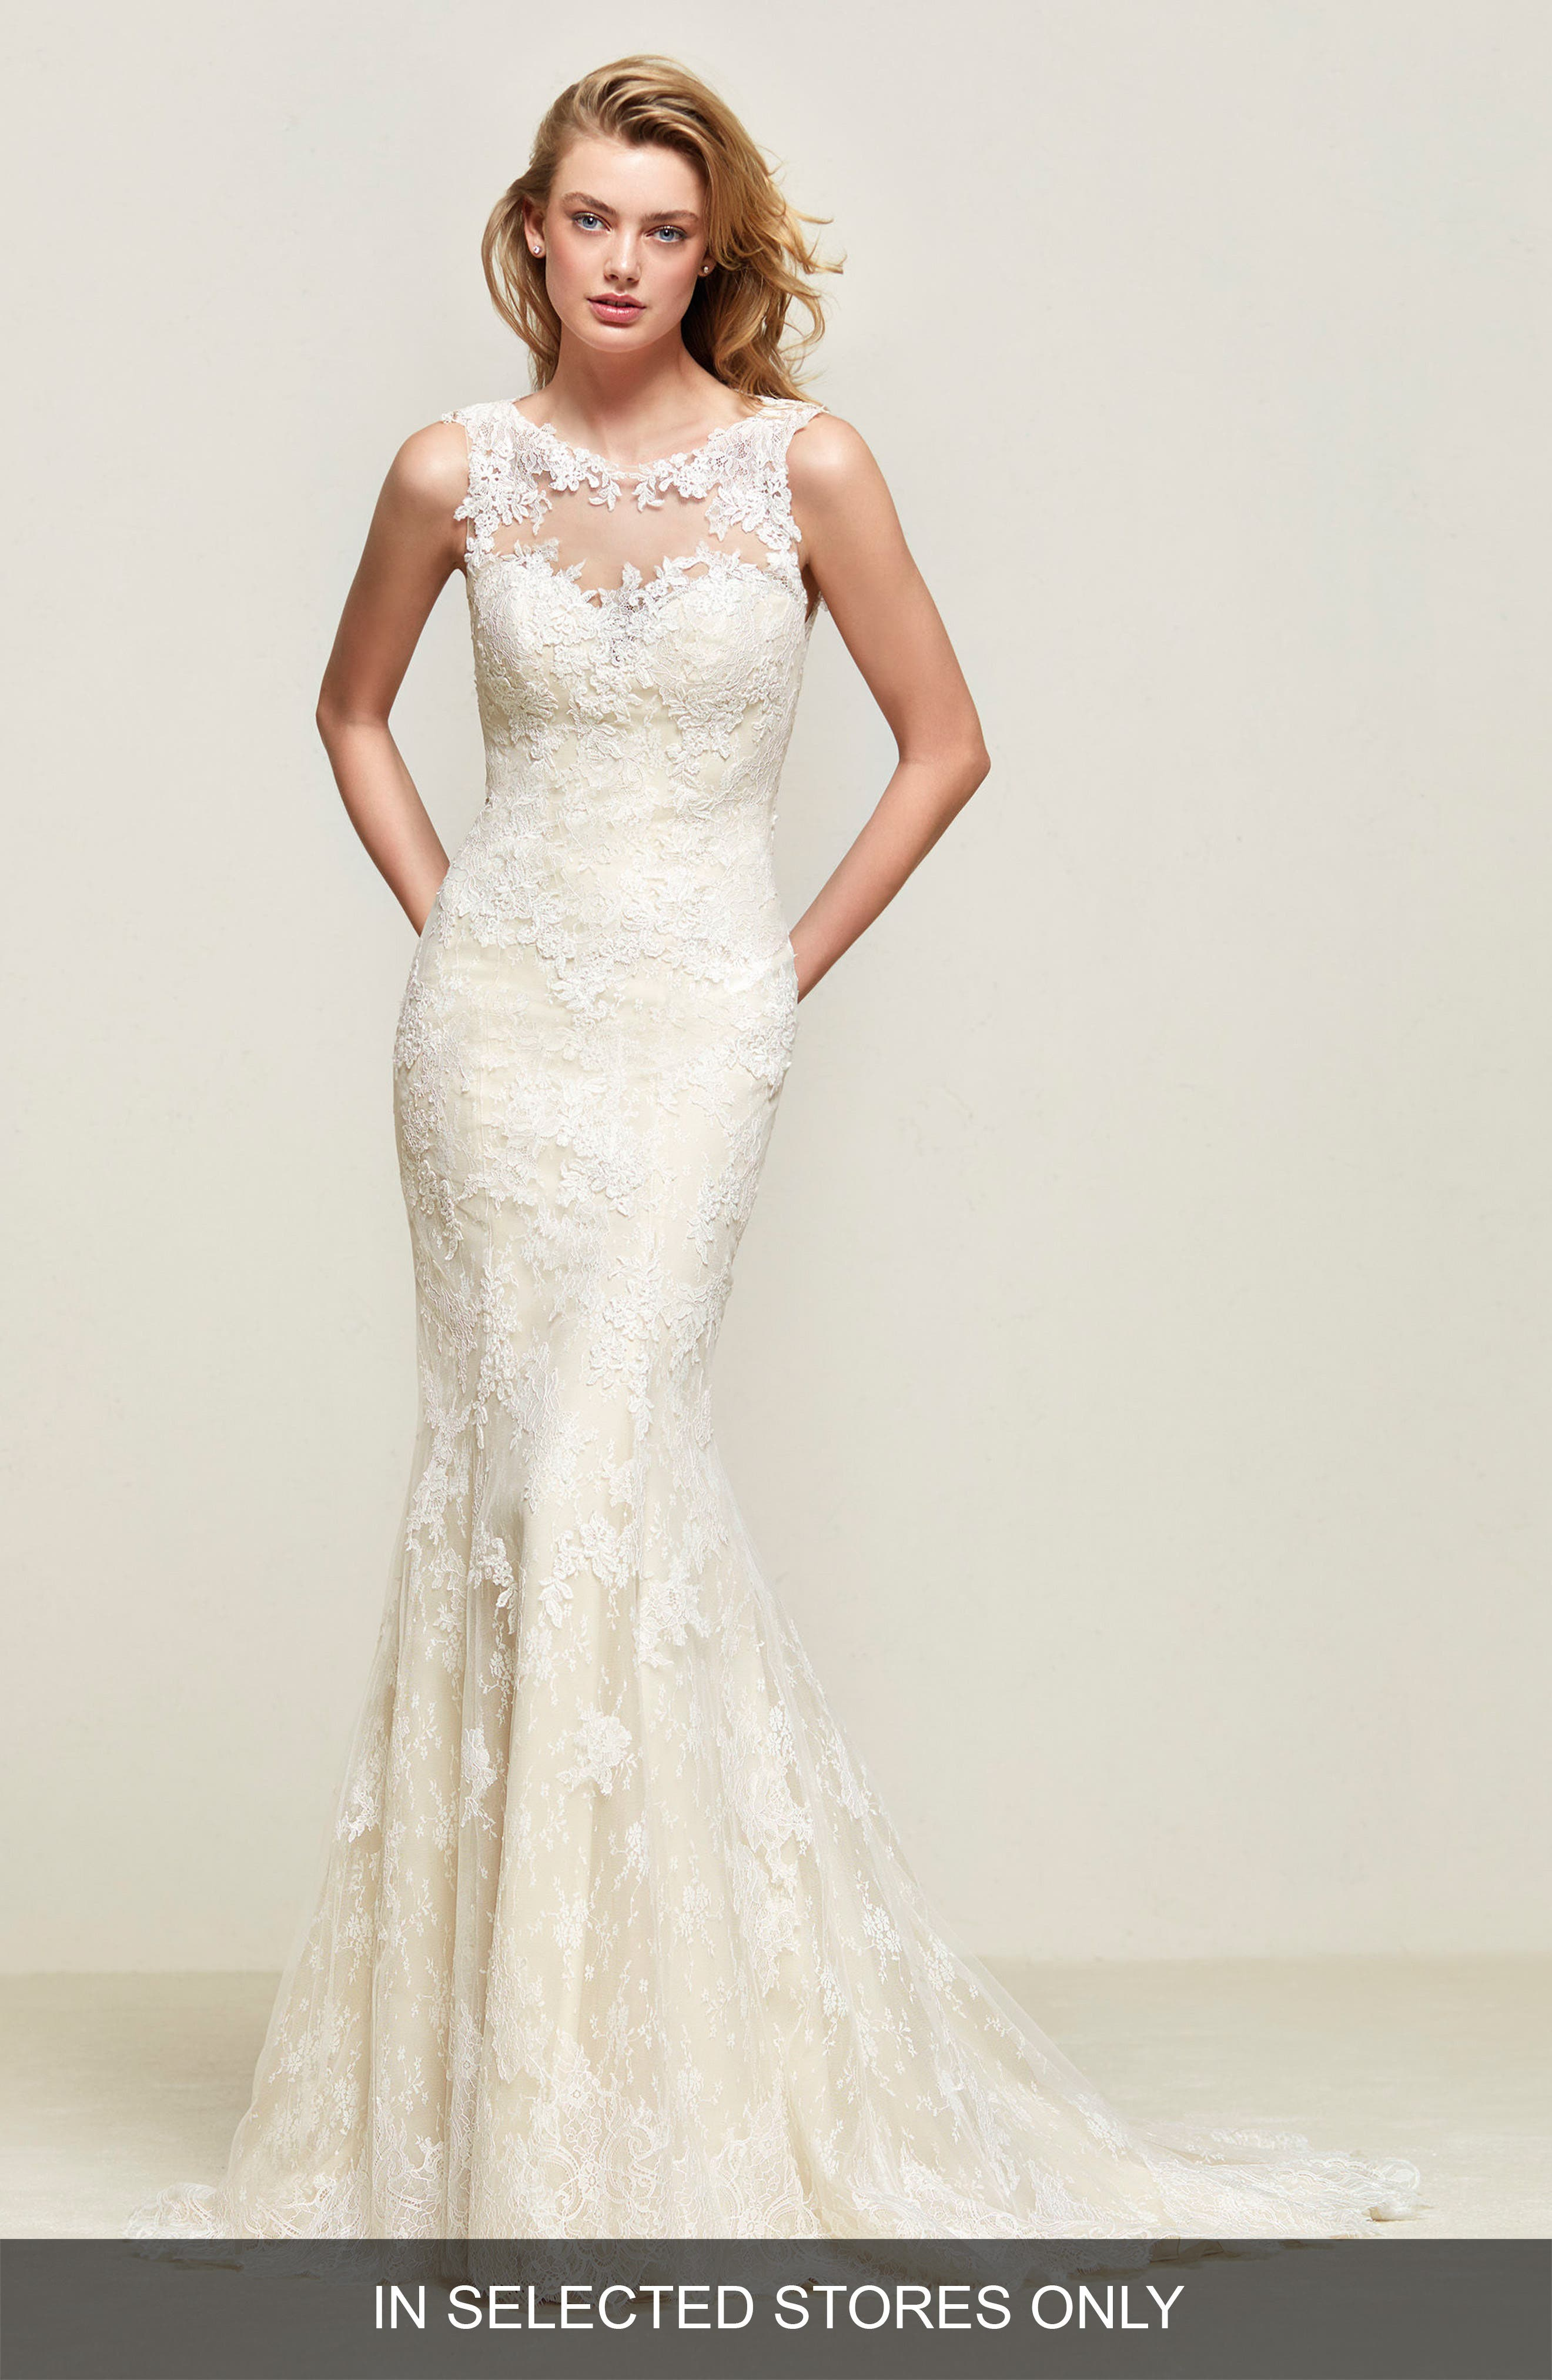 Driades Embellished Lace Mermaid Gown,                         Main,                         color, Off White